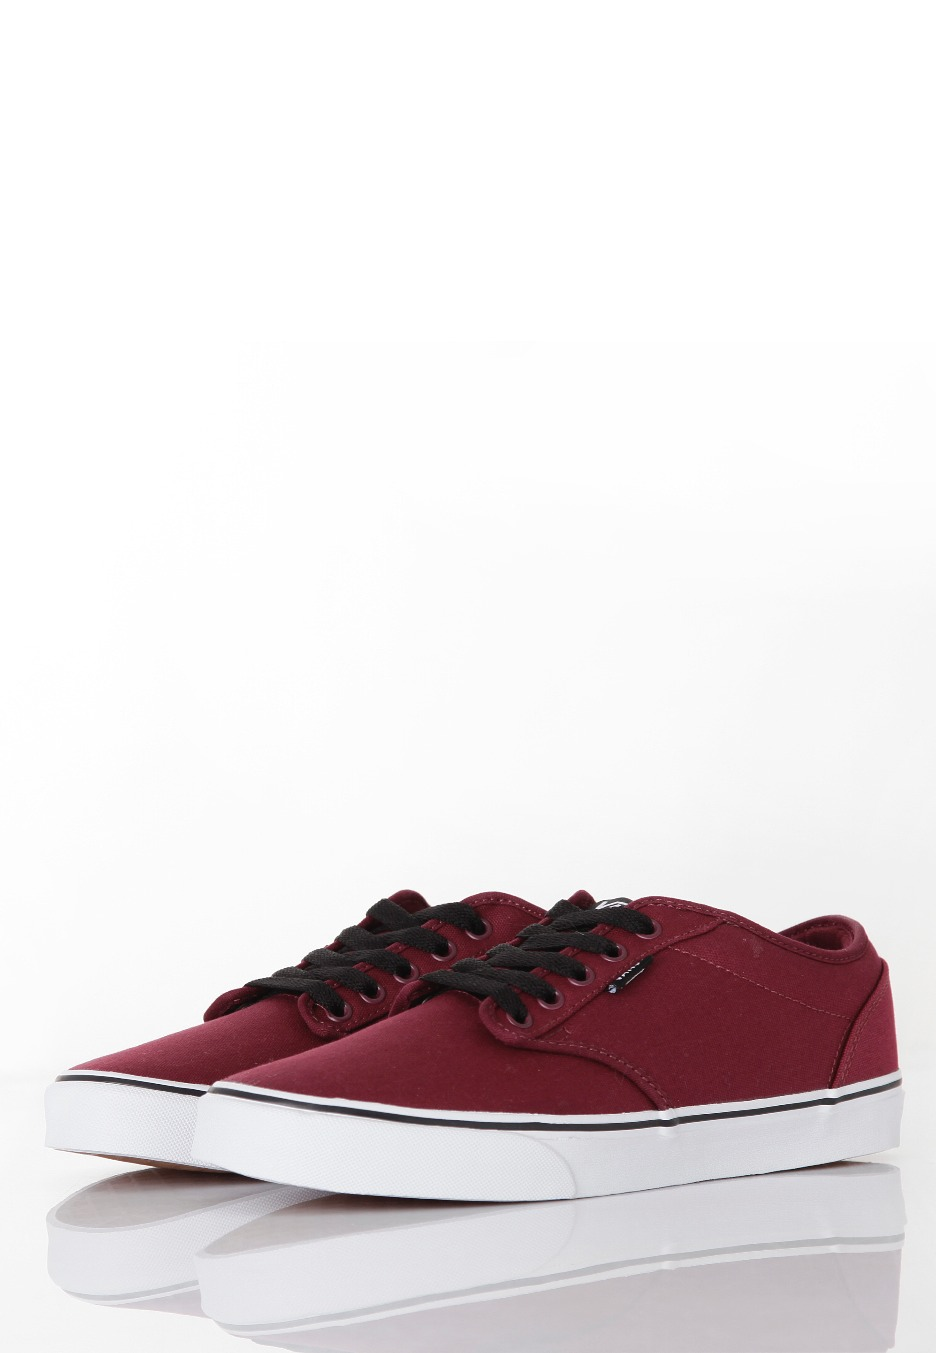 Vans - Atwood Canvas Oxblood/White - Shoes - Impericon.com UK